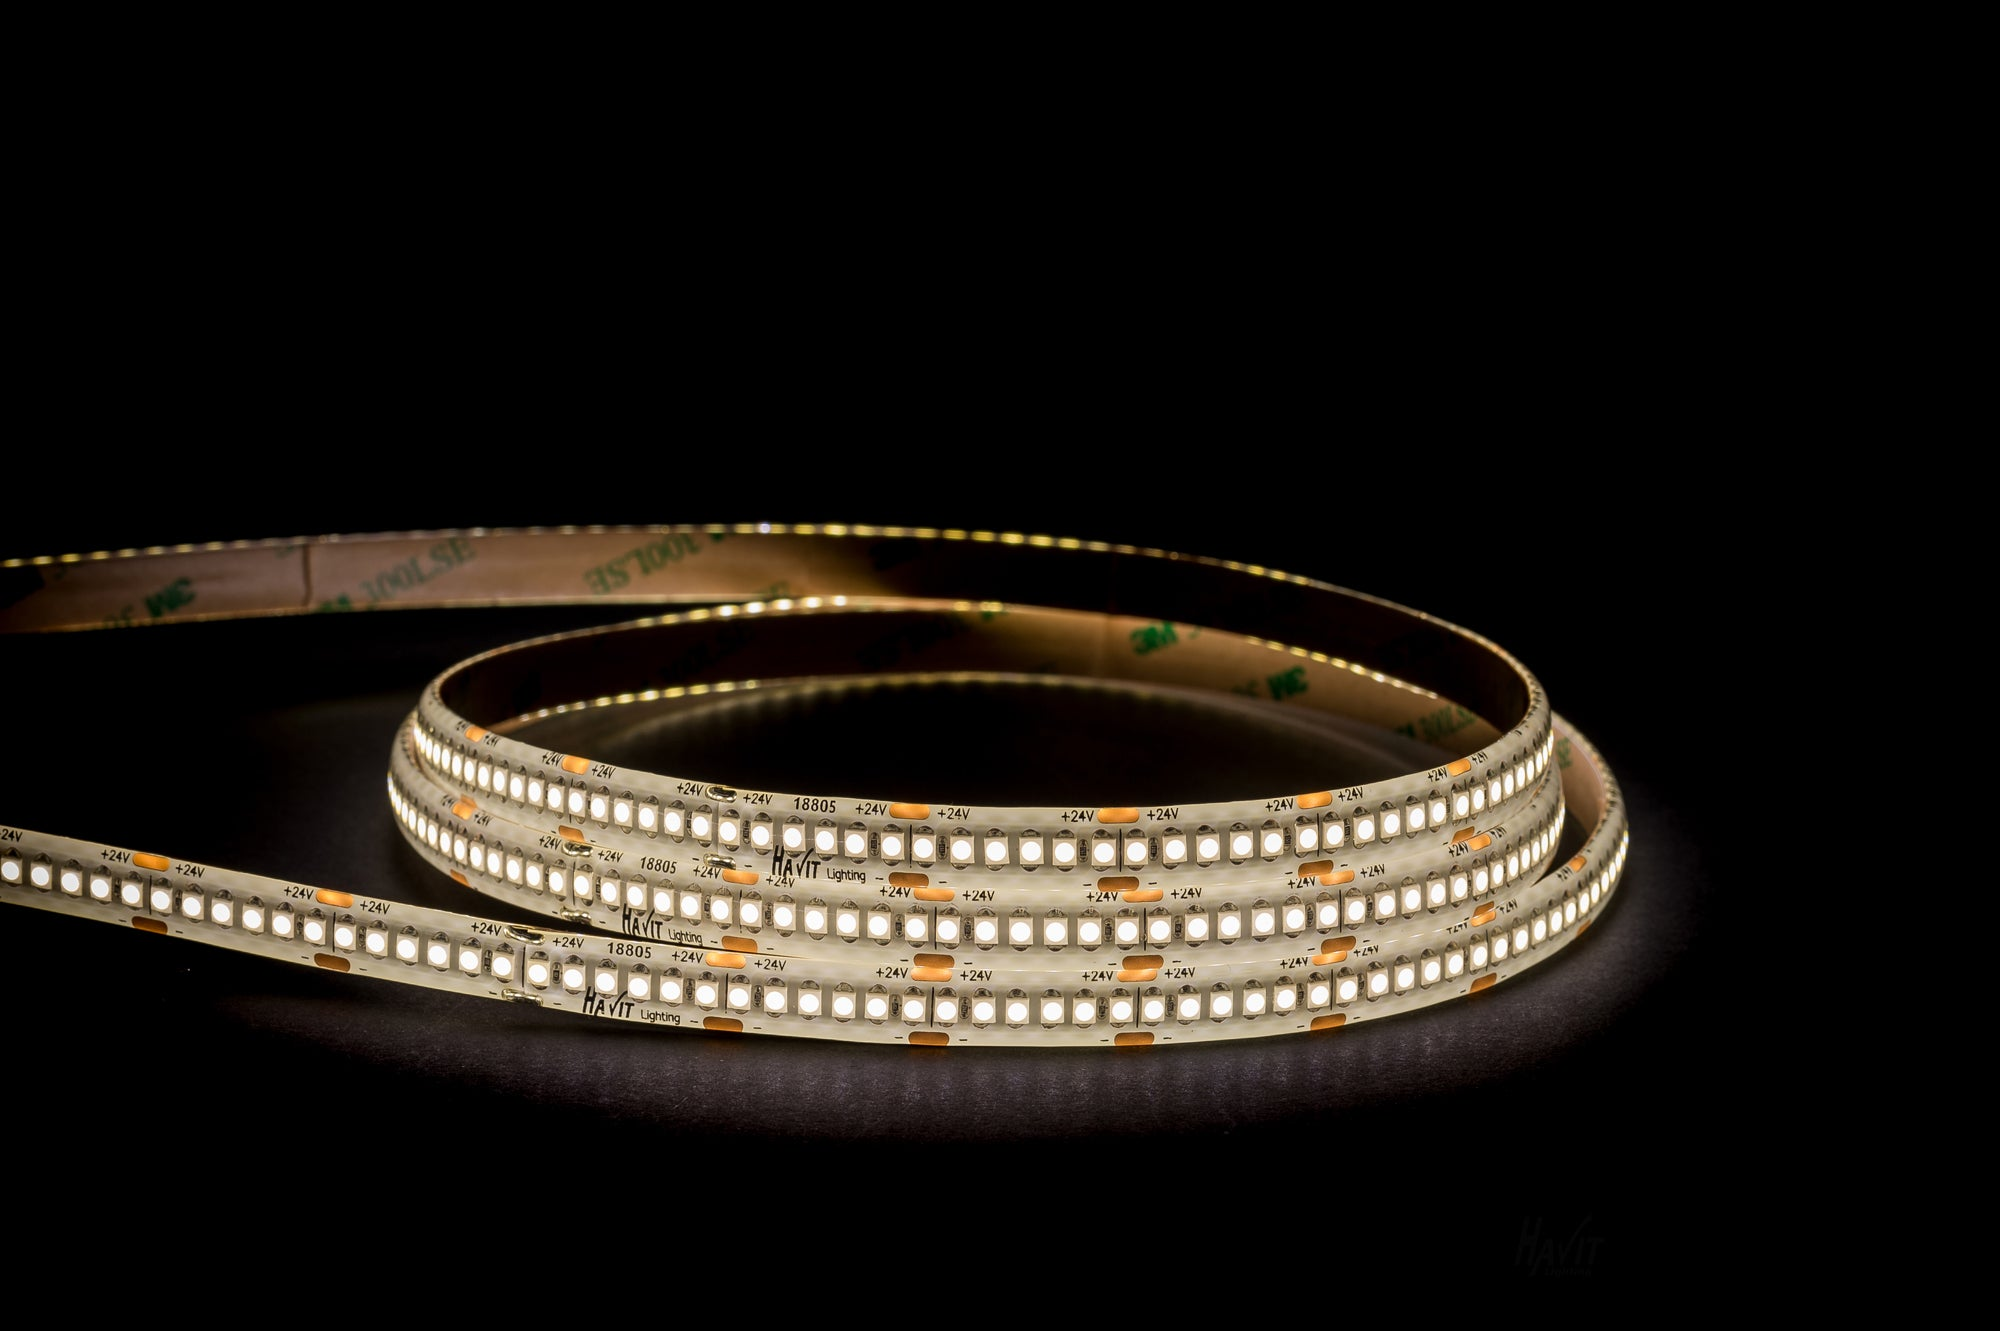 HV9723-IP54-240-4K-1 - 19.2w IP54 LED Strip 4000k